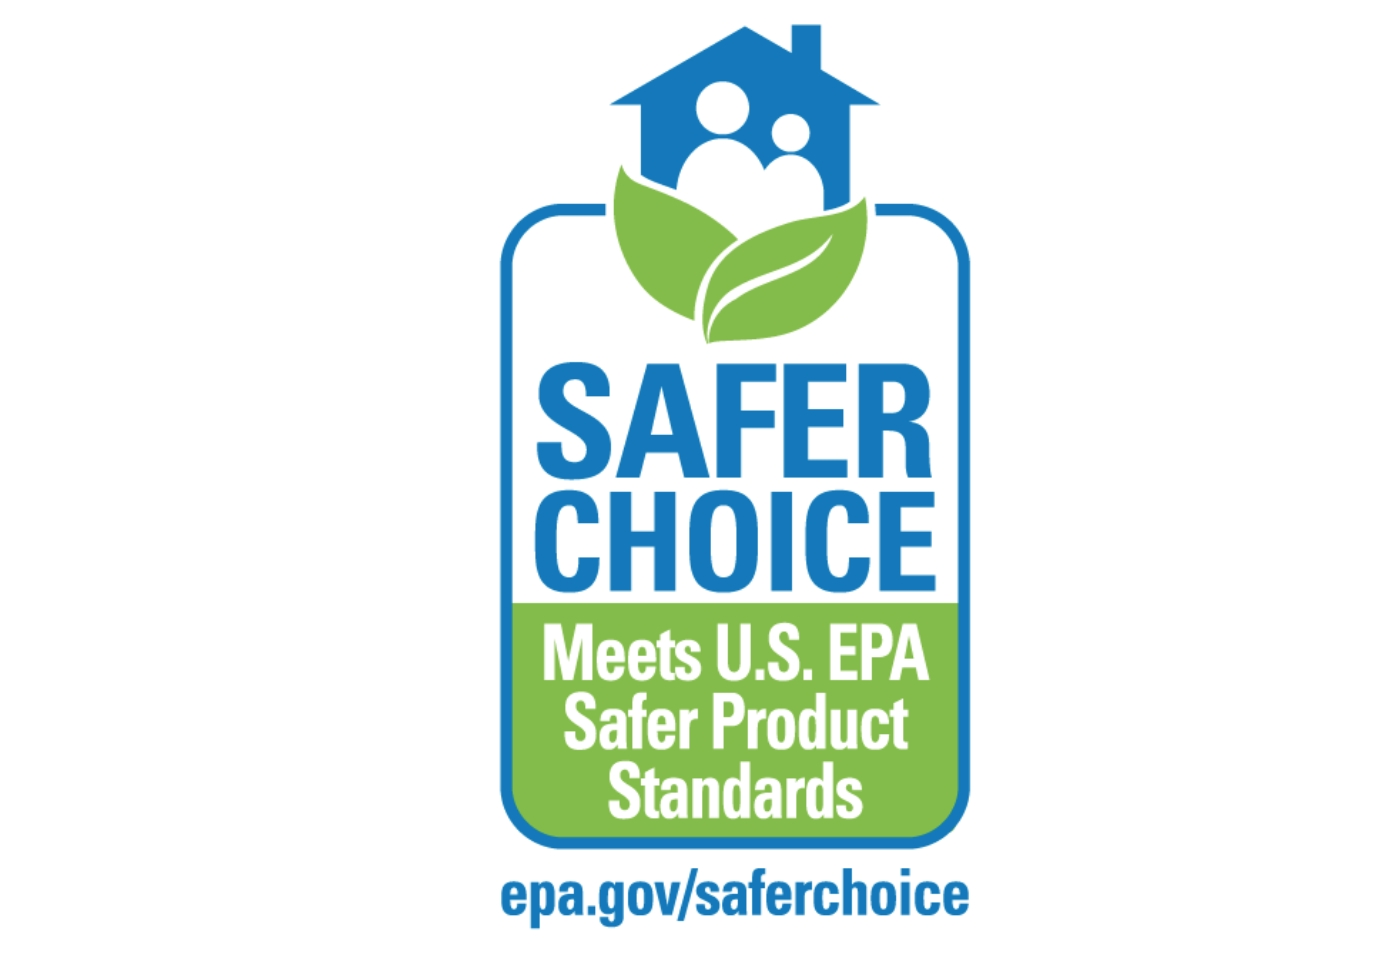 EPA Announces Safer Choice Award Winners